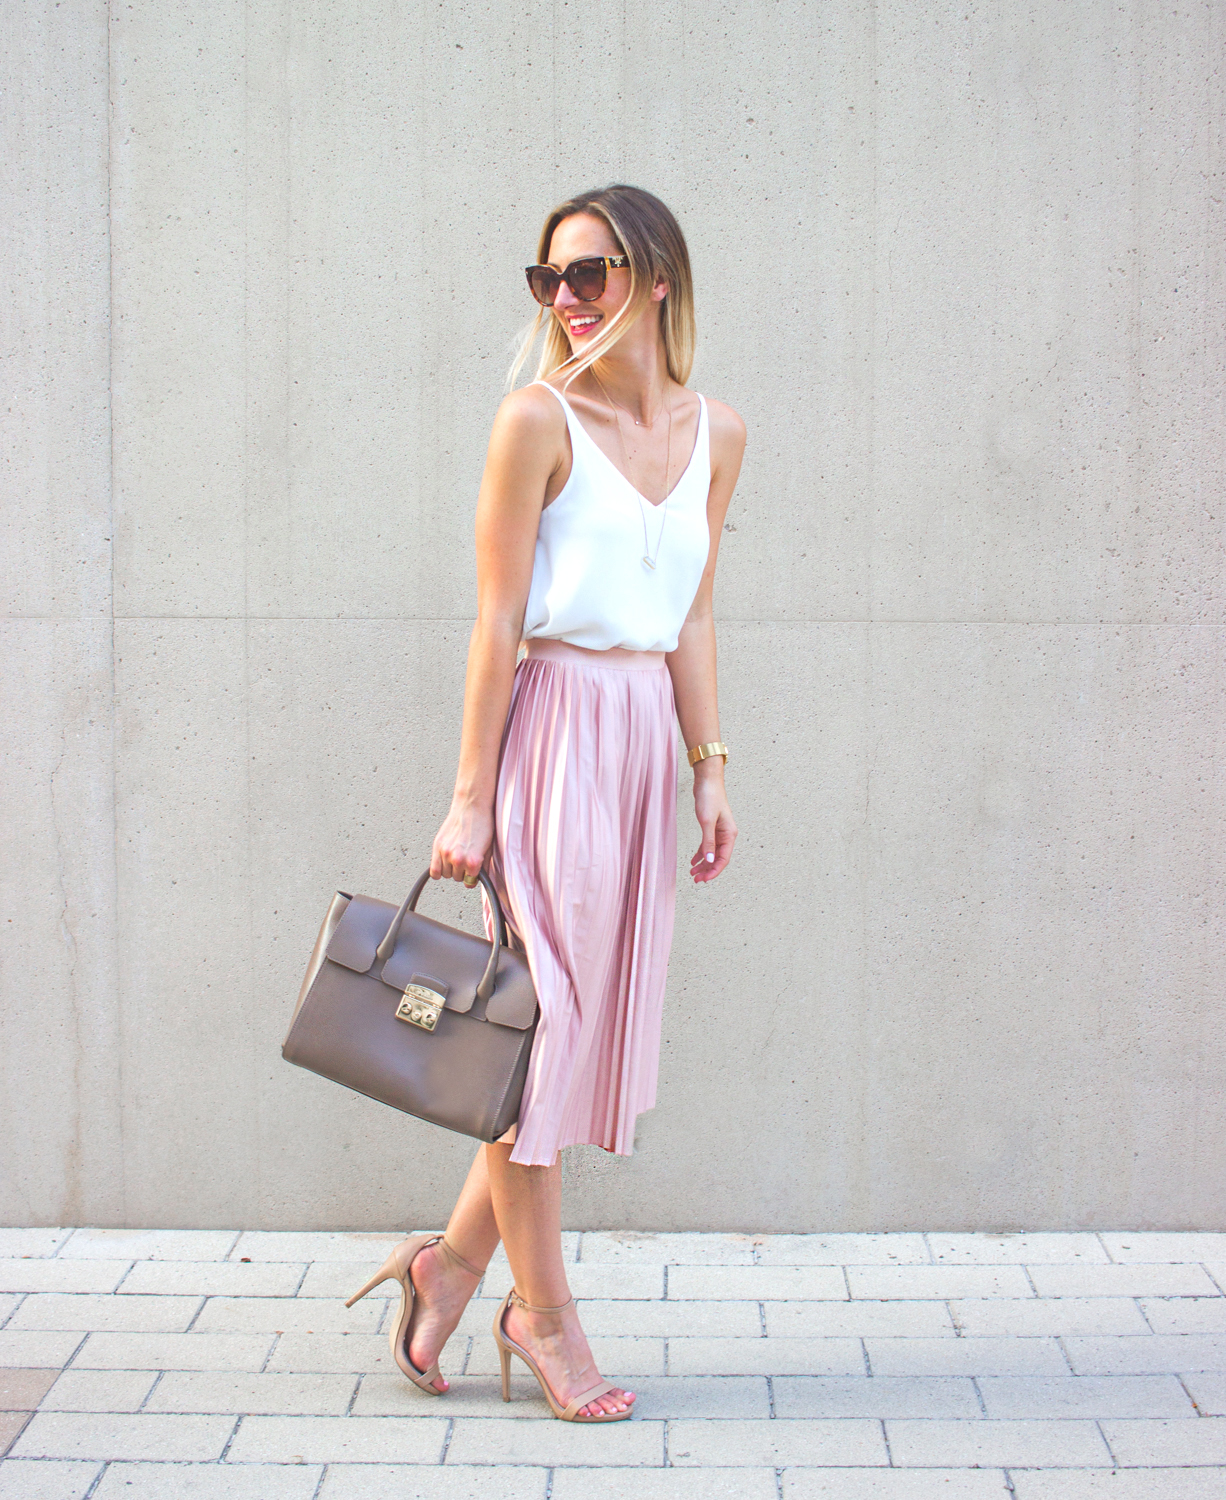 livvyland-blog-olivia-watson-topshop-blush-pink-pleated-high-waist-skirt-white-top-girly-feminine-outfit-7